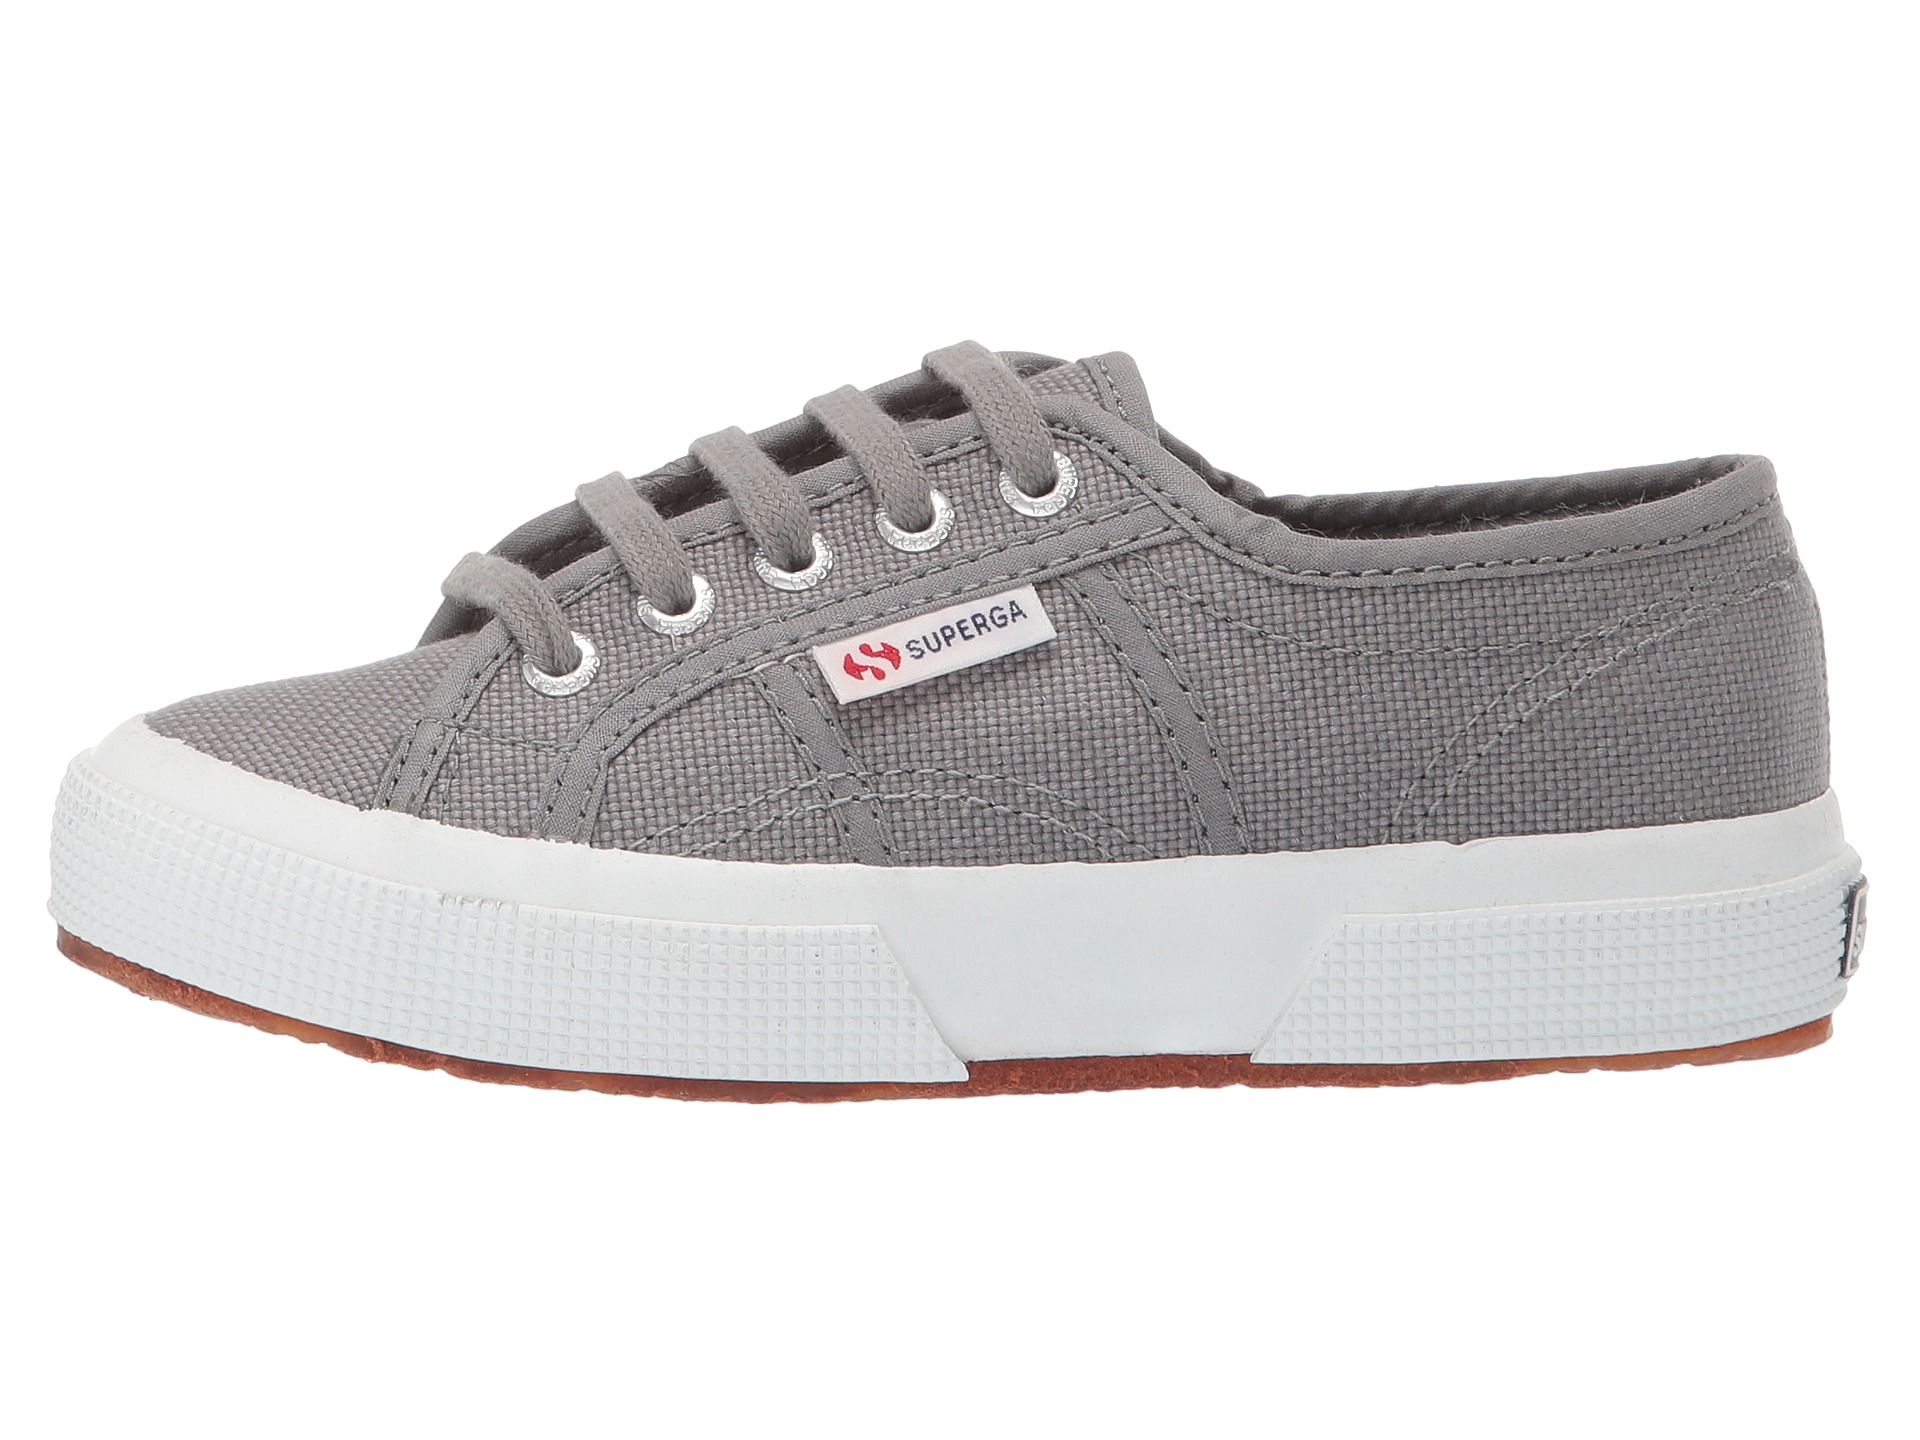 How to Use Superga Coupons Superga is a producer of quality shoes for both men and women. The company often has specials and discounts for its customers. Check out coupons for Superga that can save you up to 67% on sneakers that are on sale. Other coupons and promo codes can get you 10% off your orders or free shipping and handling.